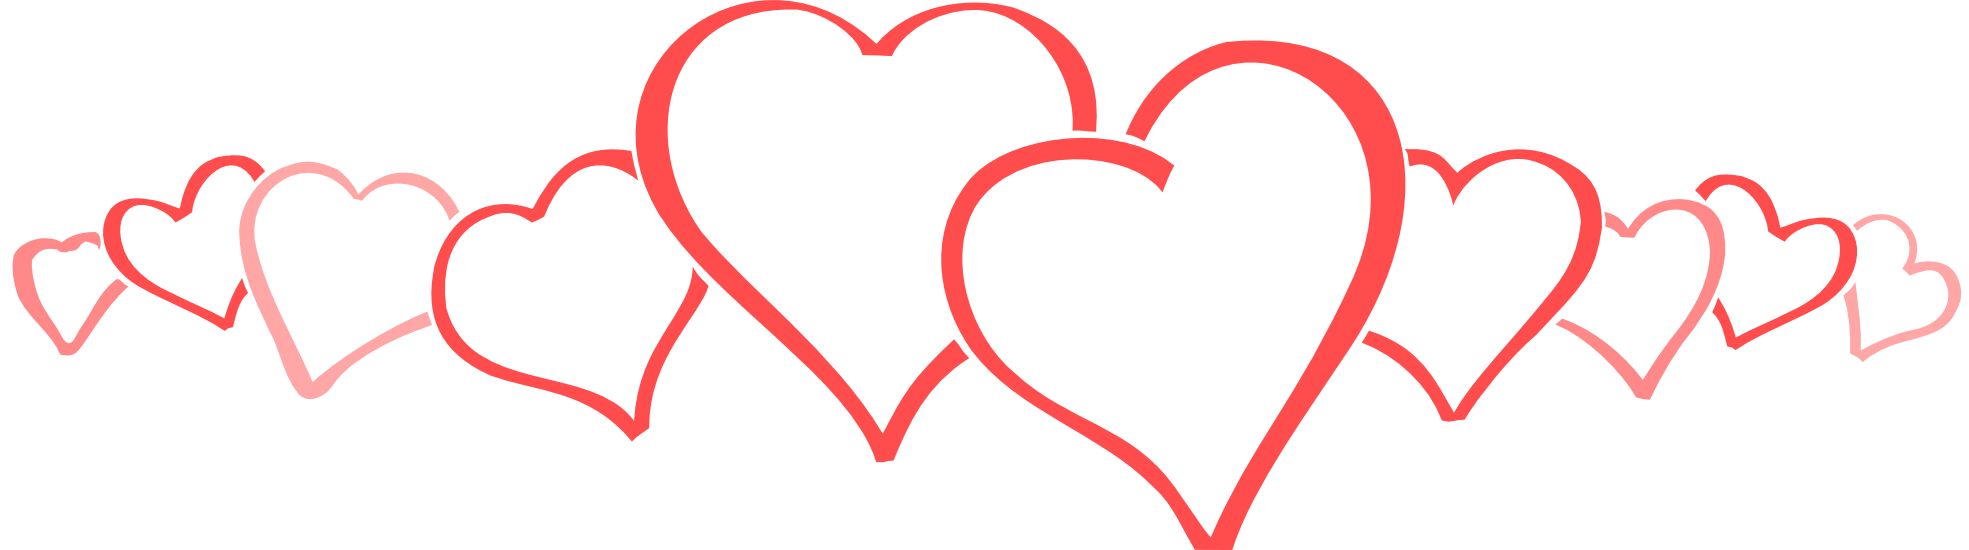 Heart lines clipart svg library Valentine Heart Clipart at GetDrawings.com | Free for personal use ... svg library